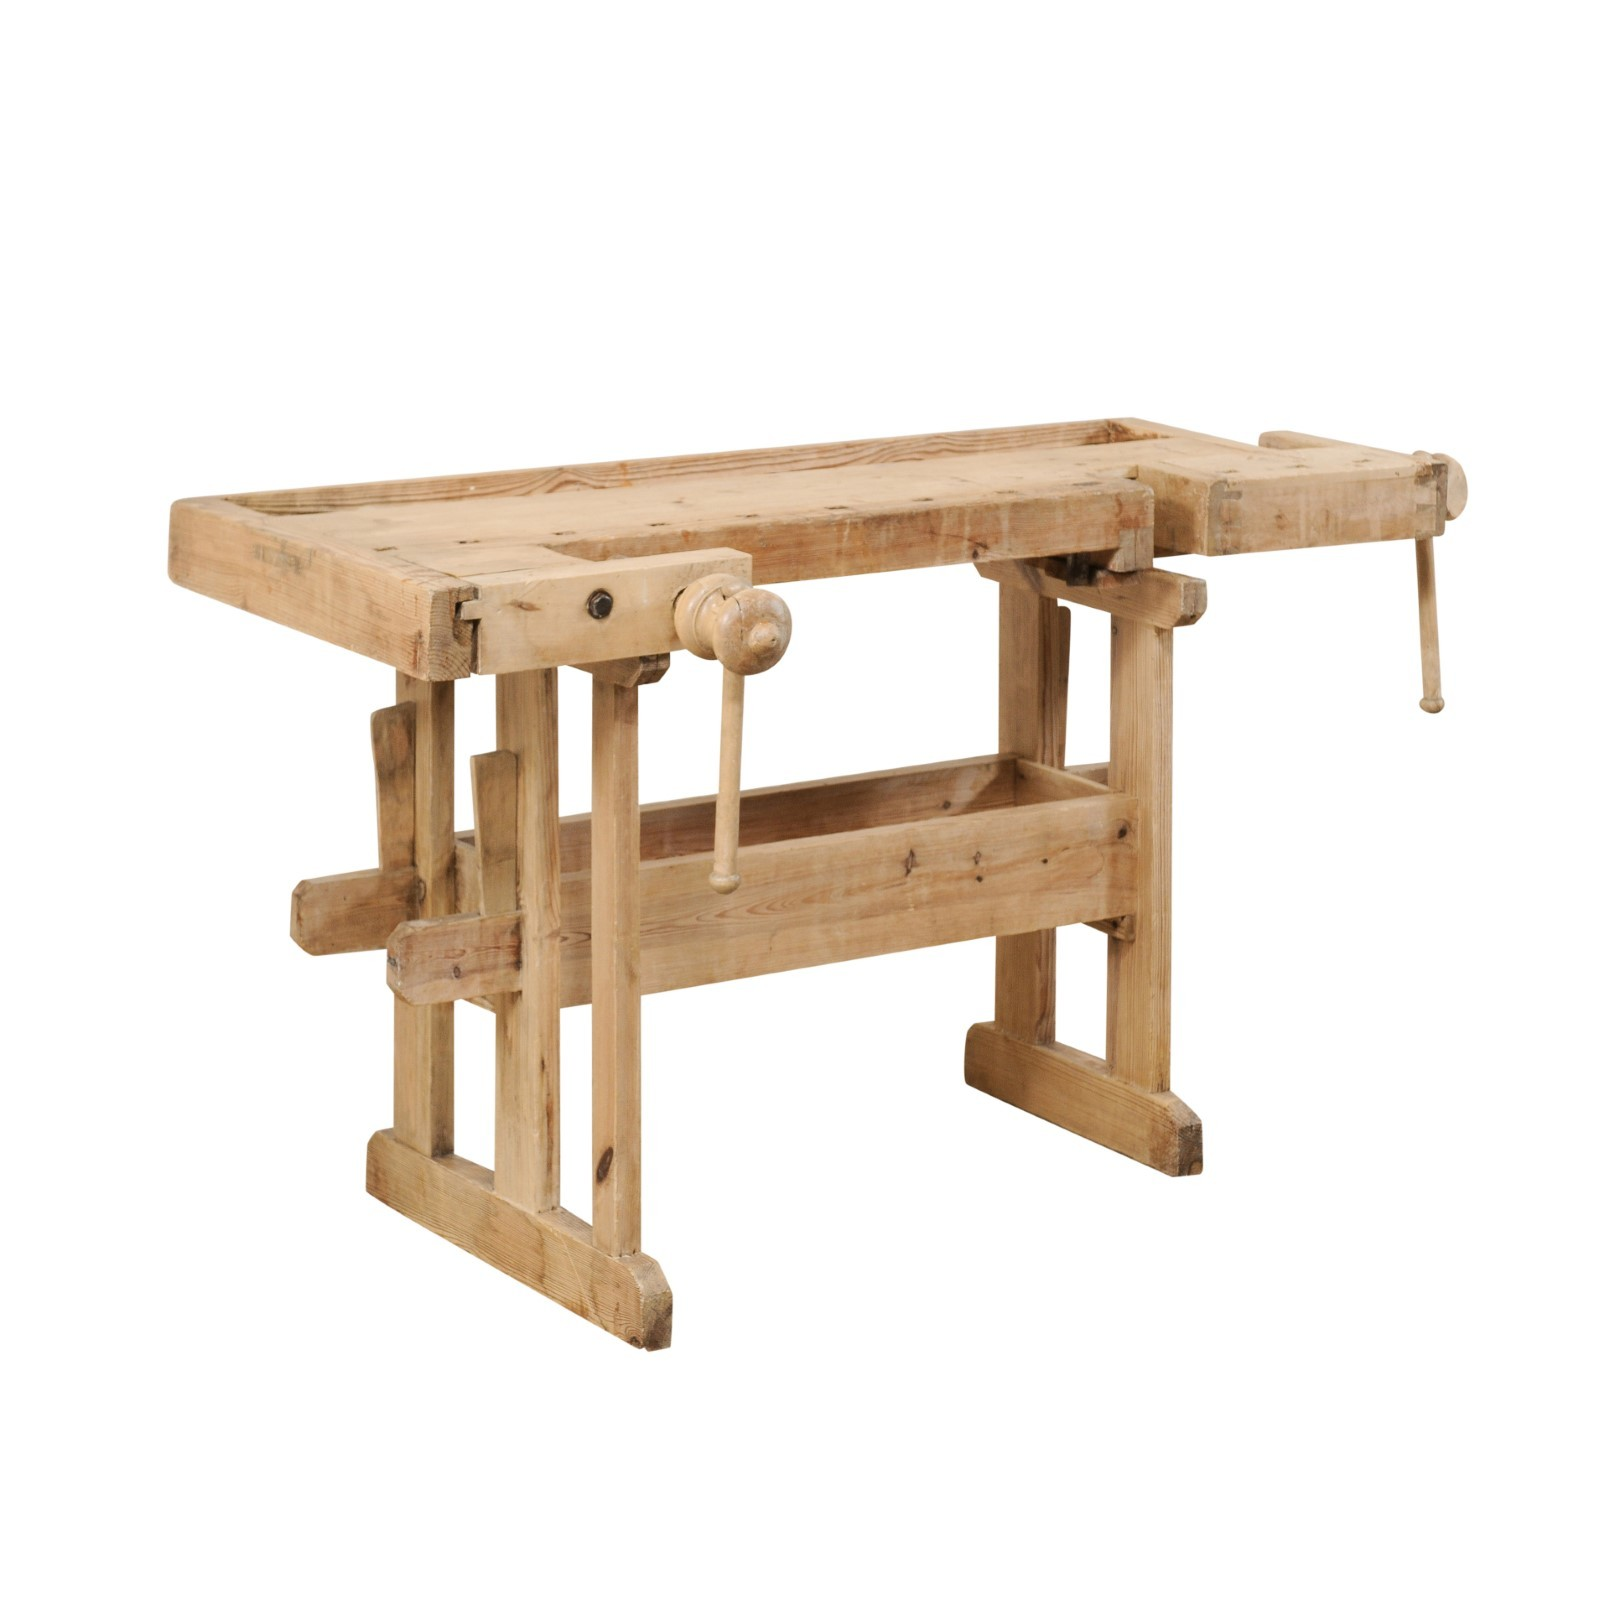 Swedish Work-bench Table w/Shallow Profile